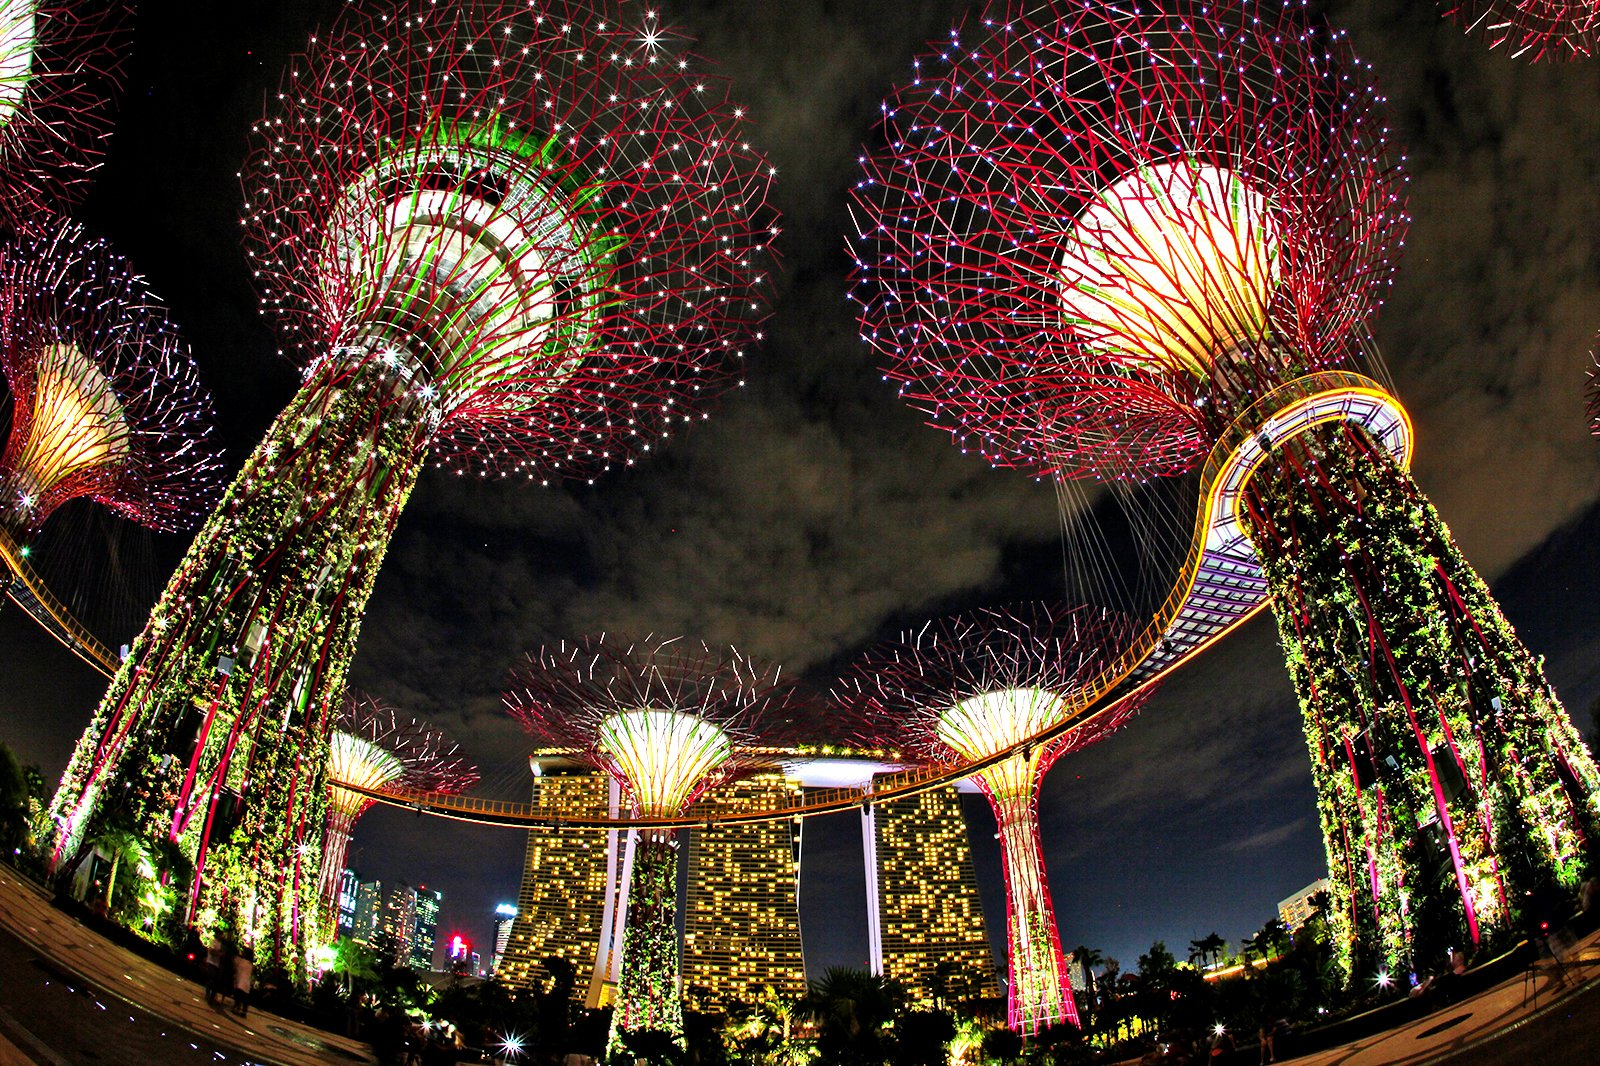 10 Things to Do with Your Family in Singapore - Singapore